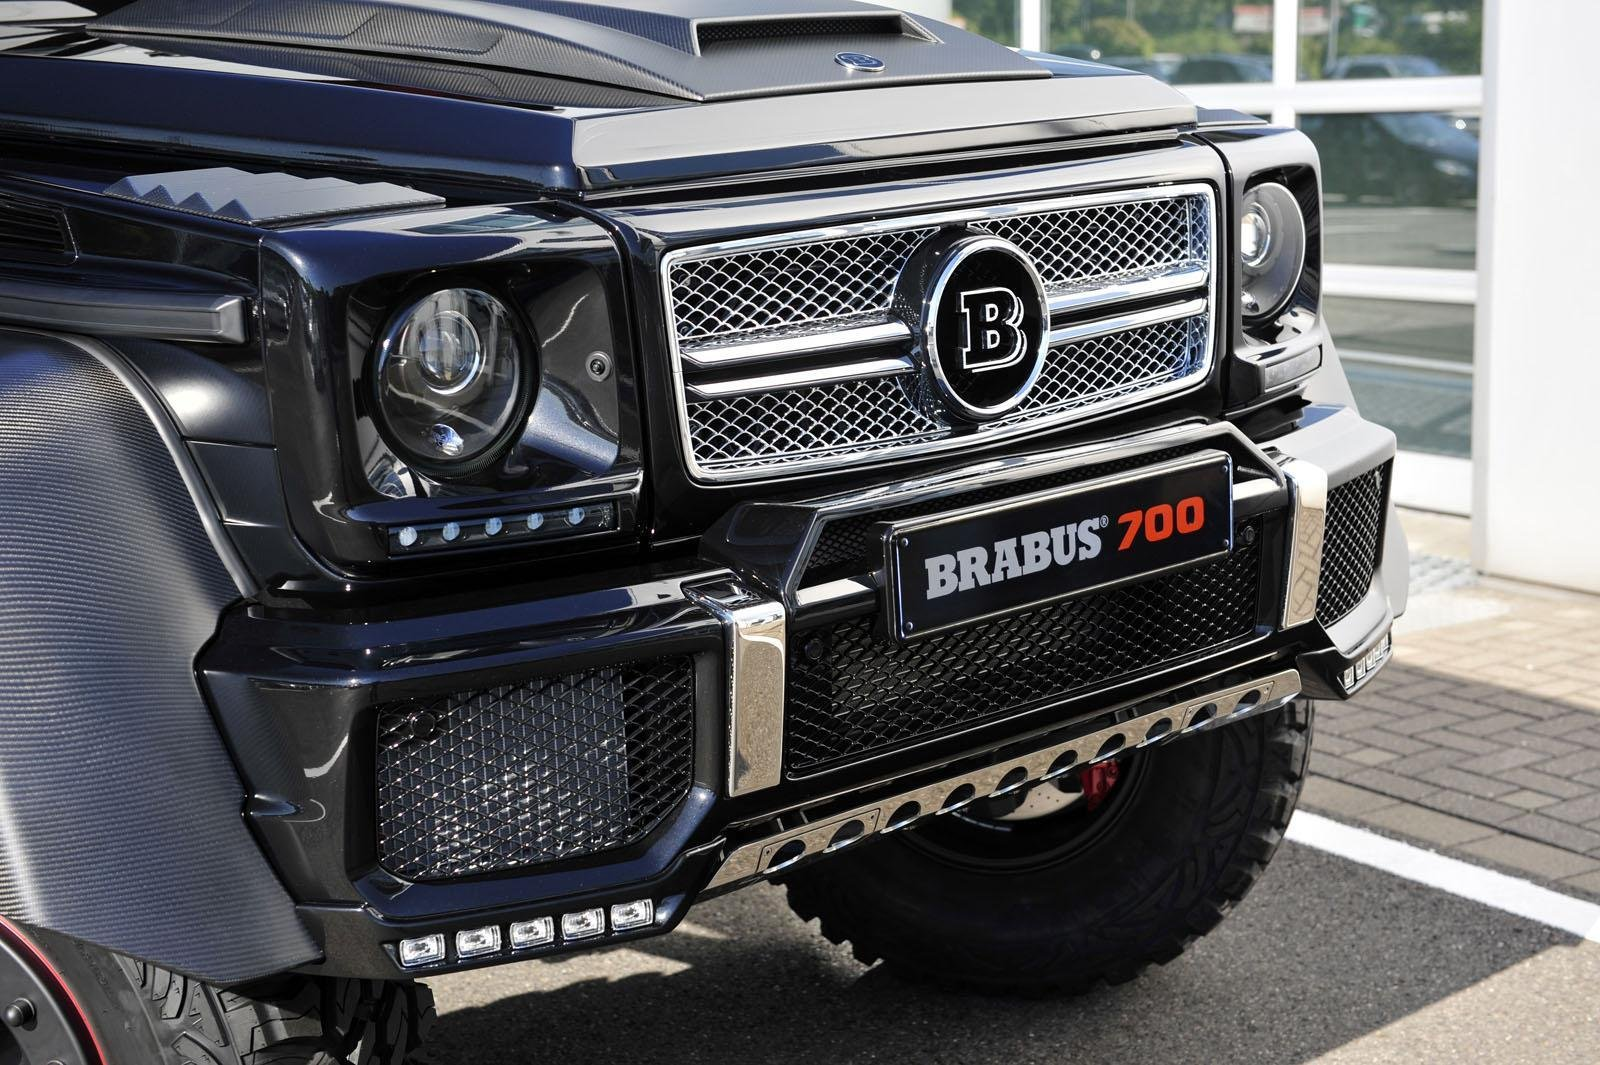 2013 mercedes benz g63 amg 6x6 b63s 700 by brabus for Mercedes benz amg 6x6